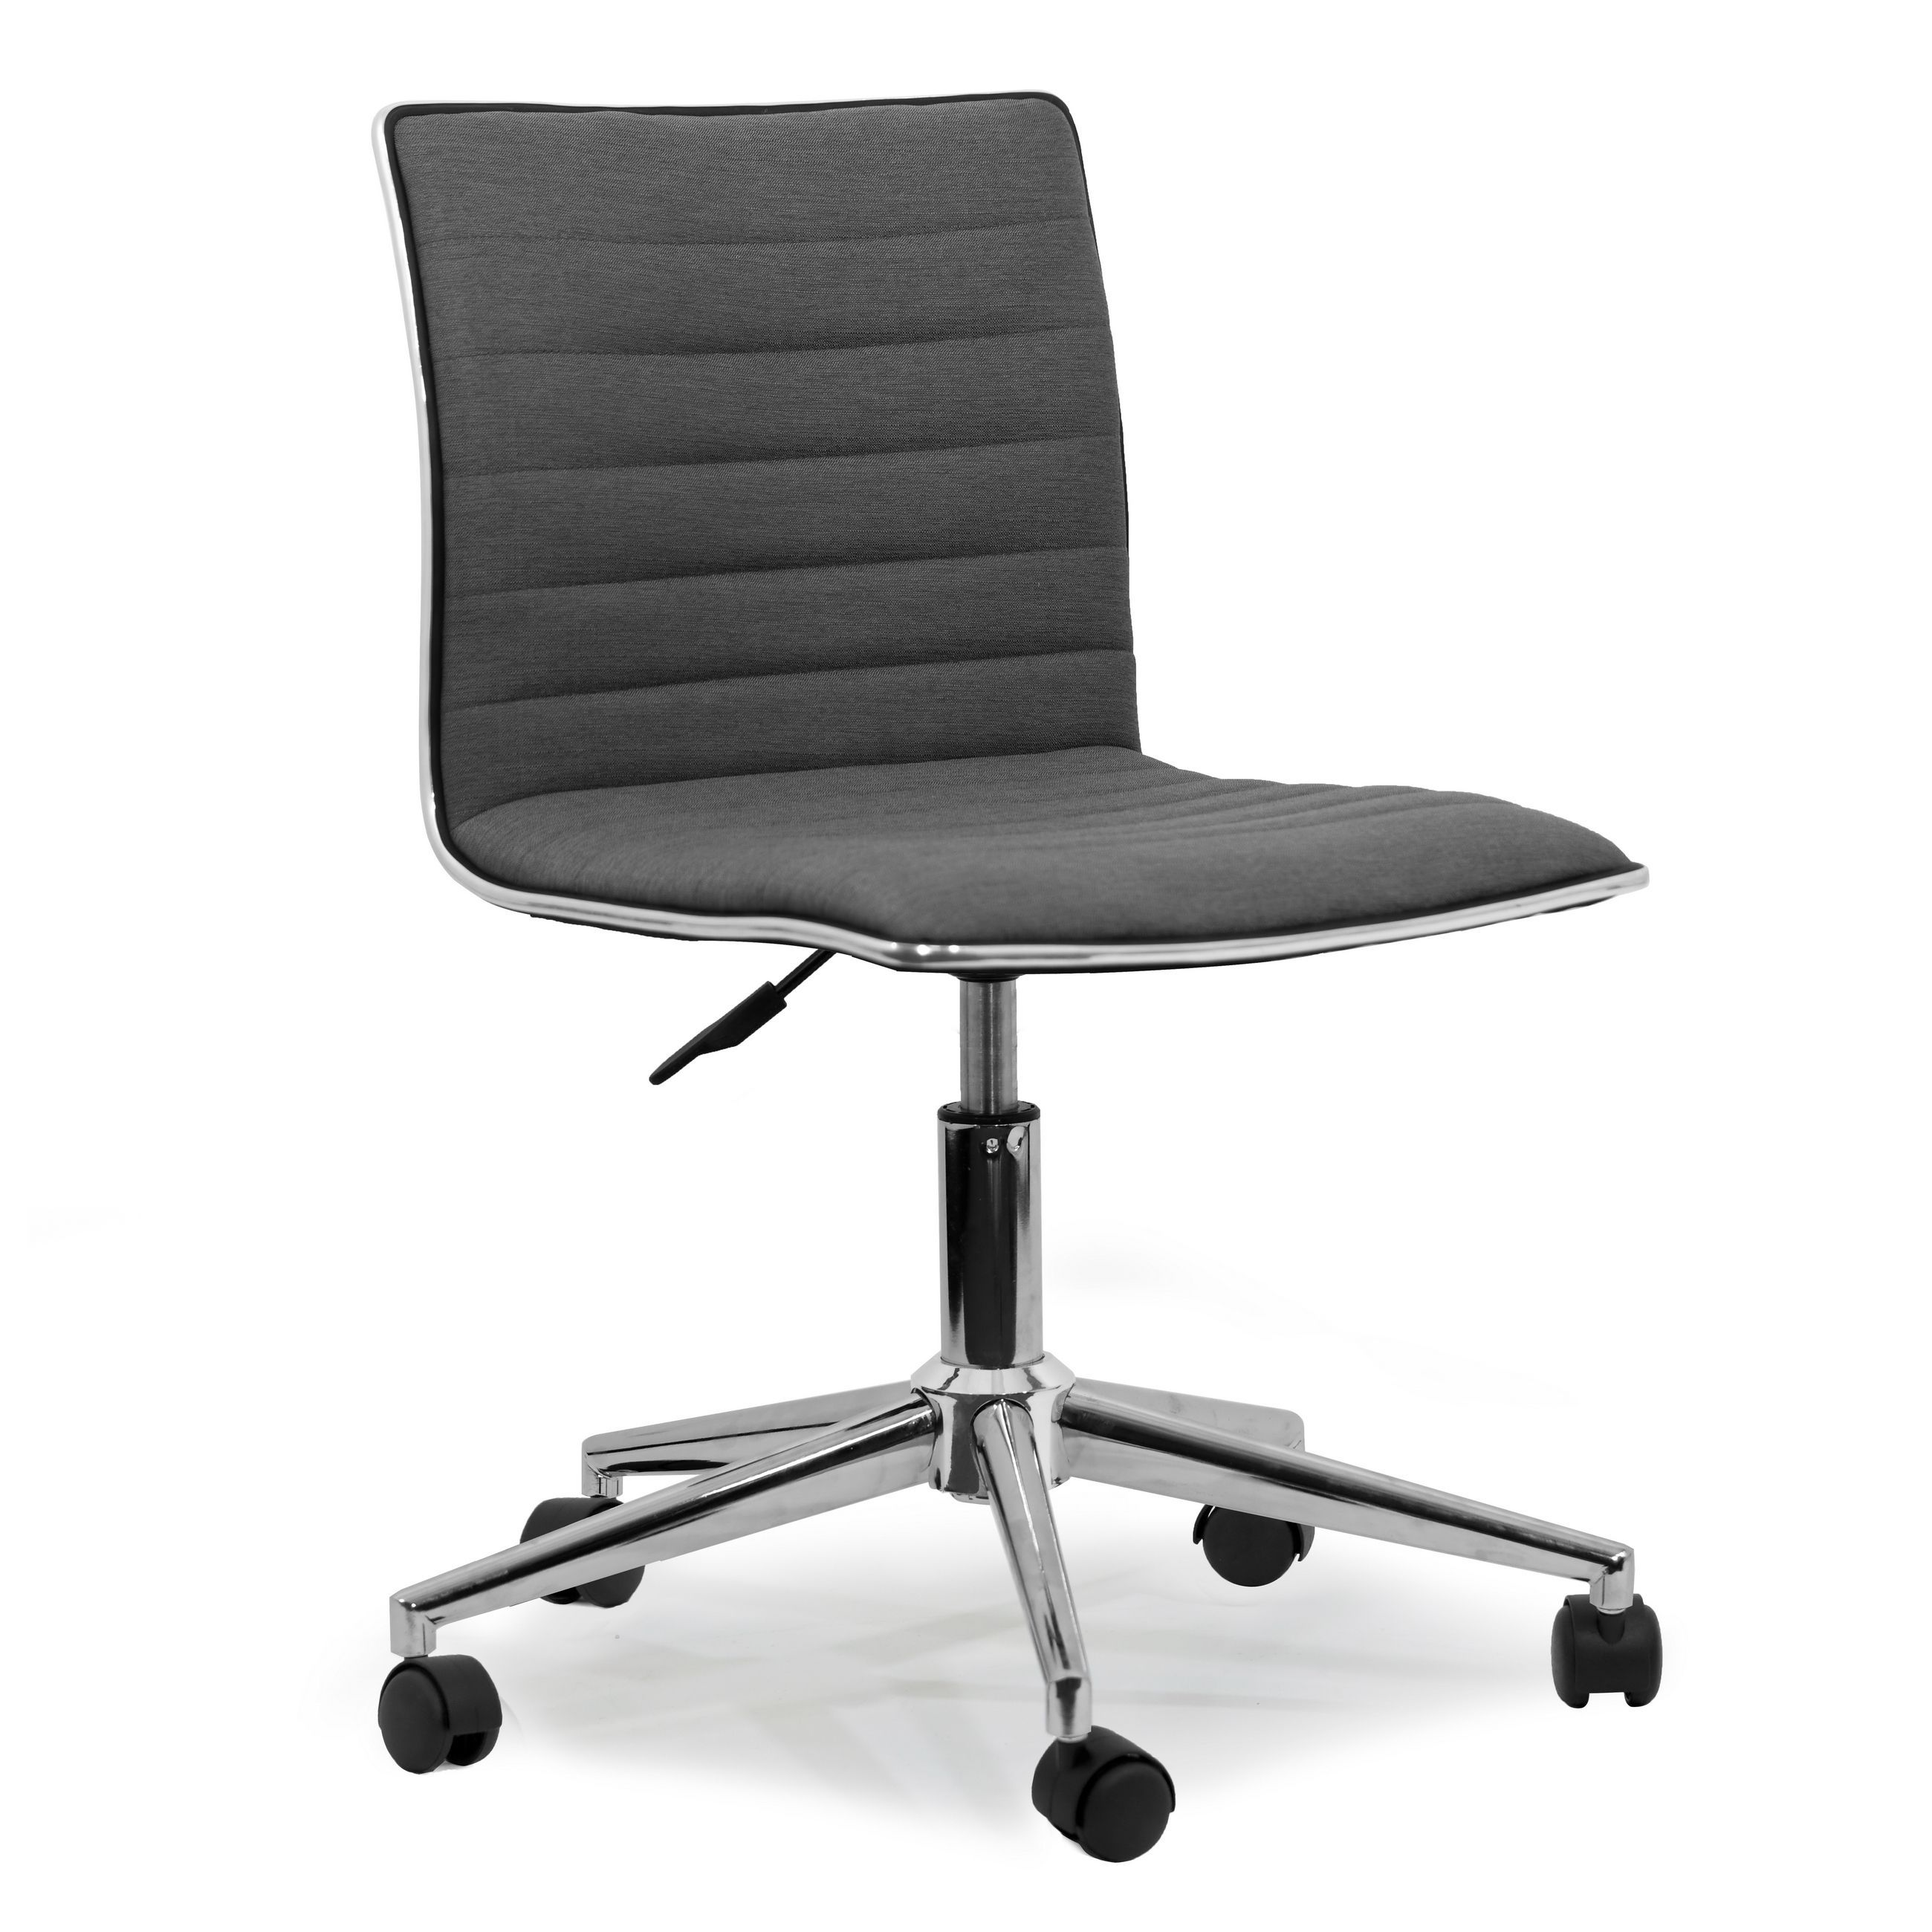 Aiko Grey Fabric Chrome Metal Swivel Office Chair With Wheels Swivel Office Chair Office Chair Office Chair Wheels